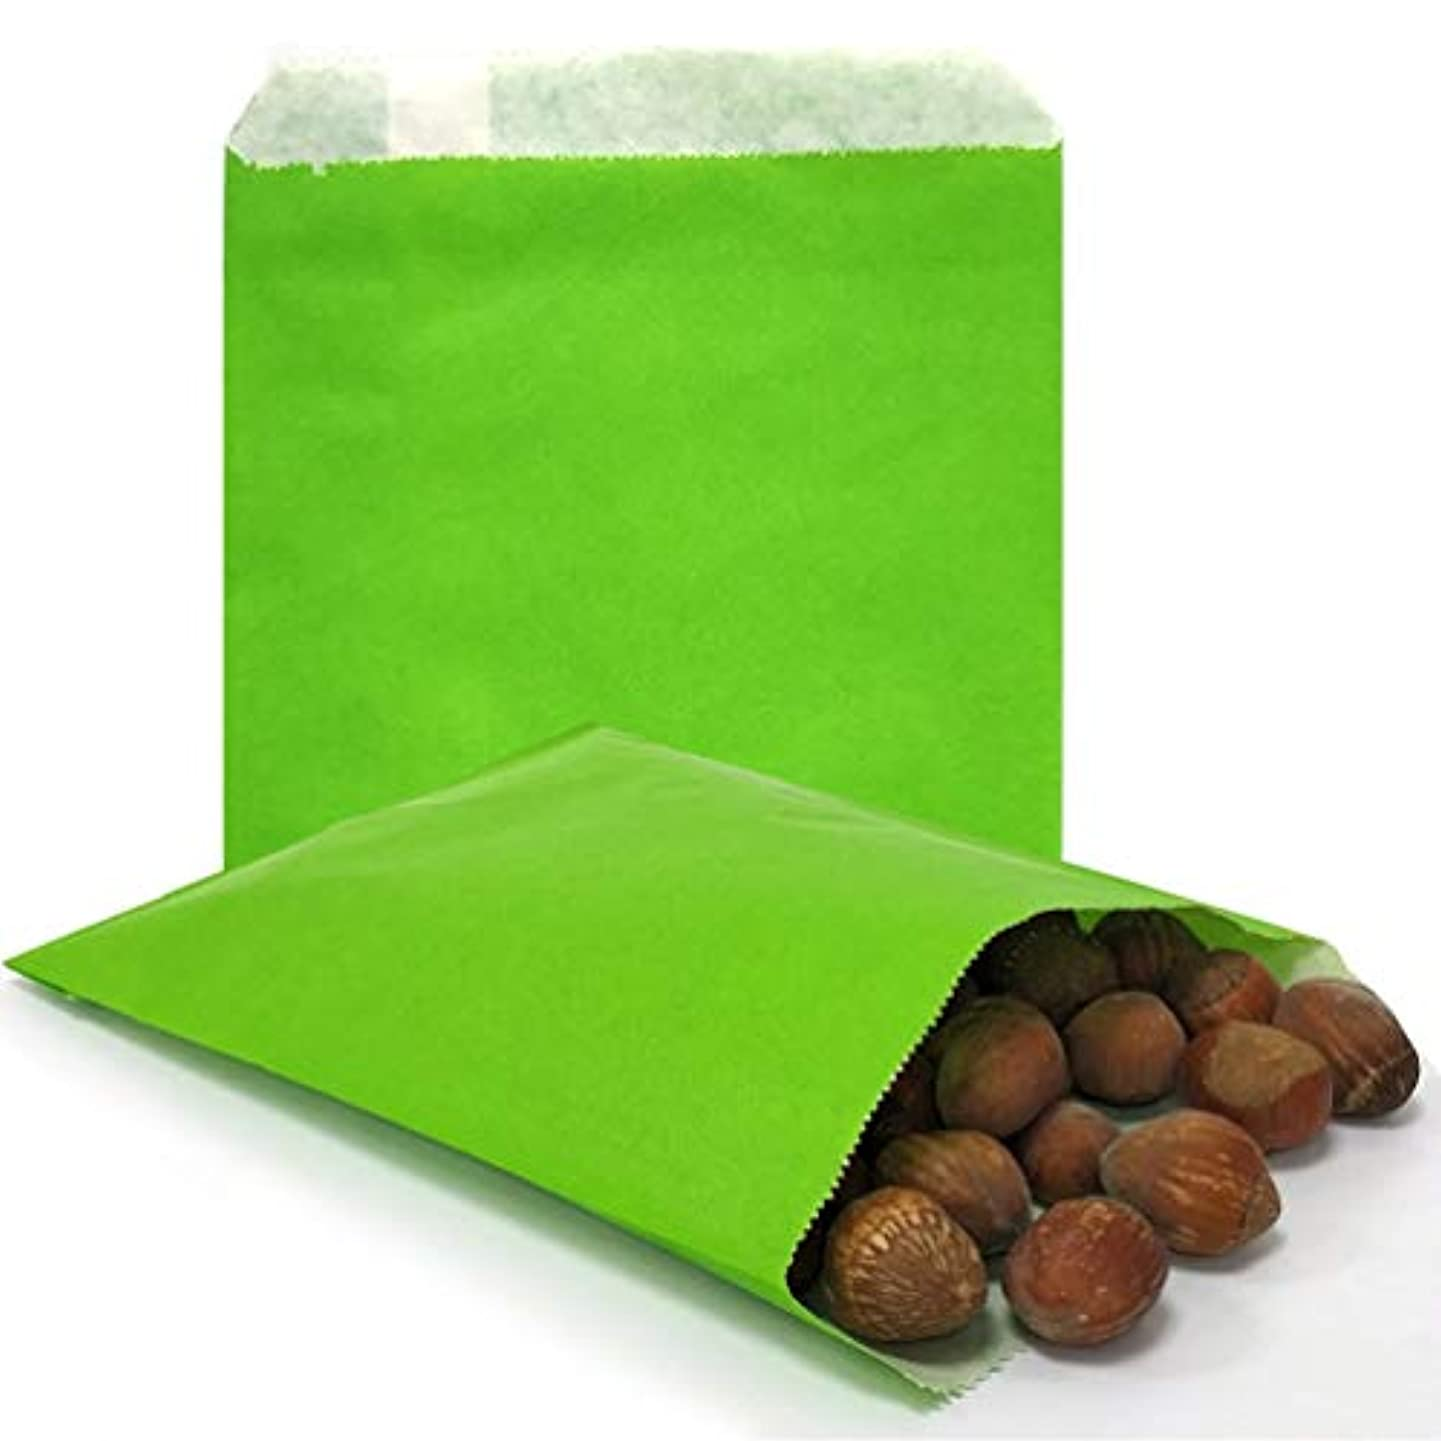 AZOWA 100 CT Small Paper Treat Sacks Green 5 x 7 Inches Candy Buffet Bags for Party